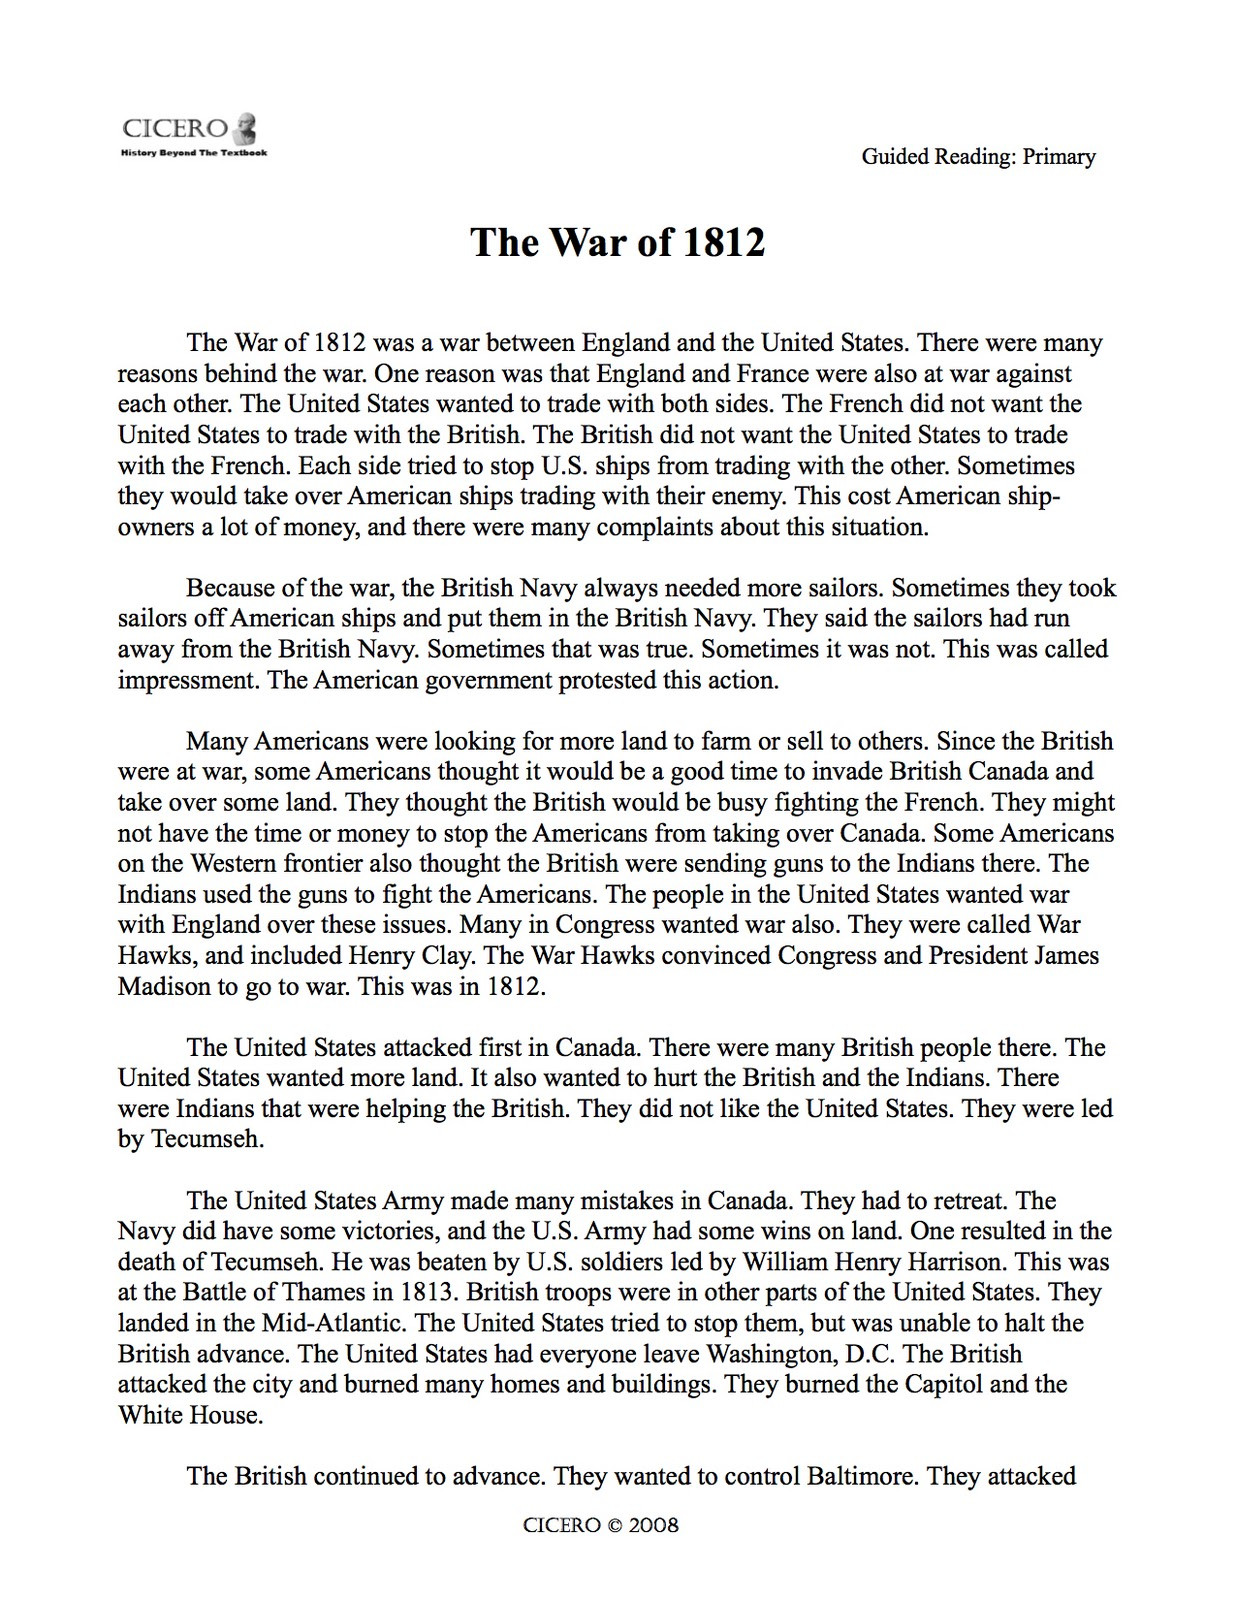 Essays on the war of 1812